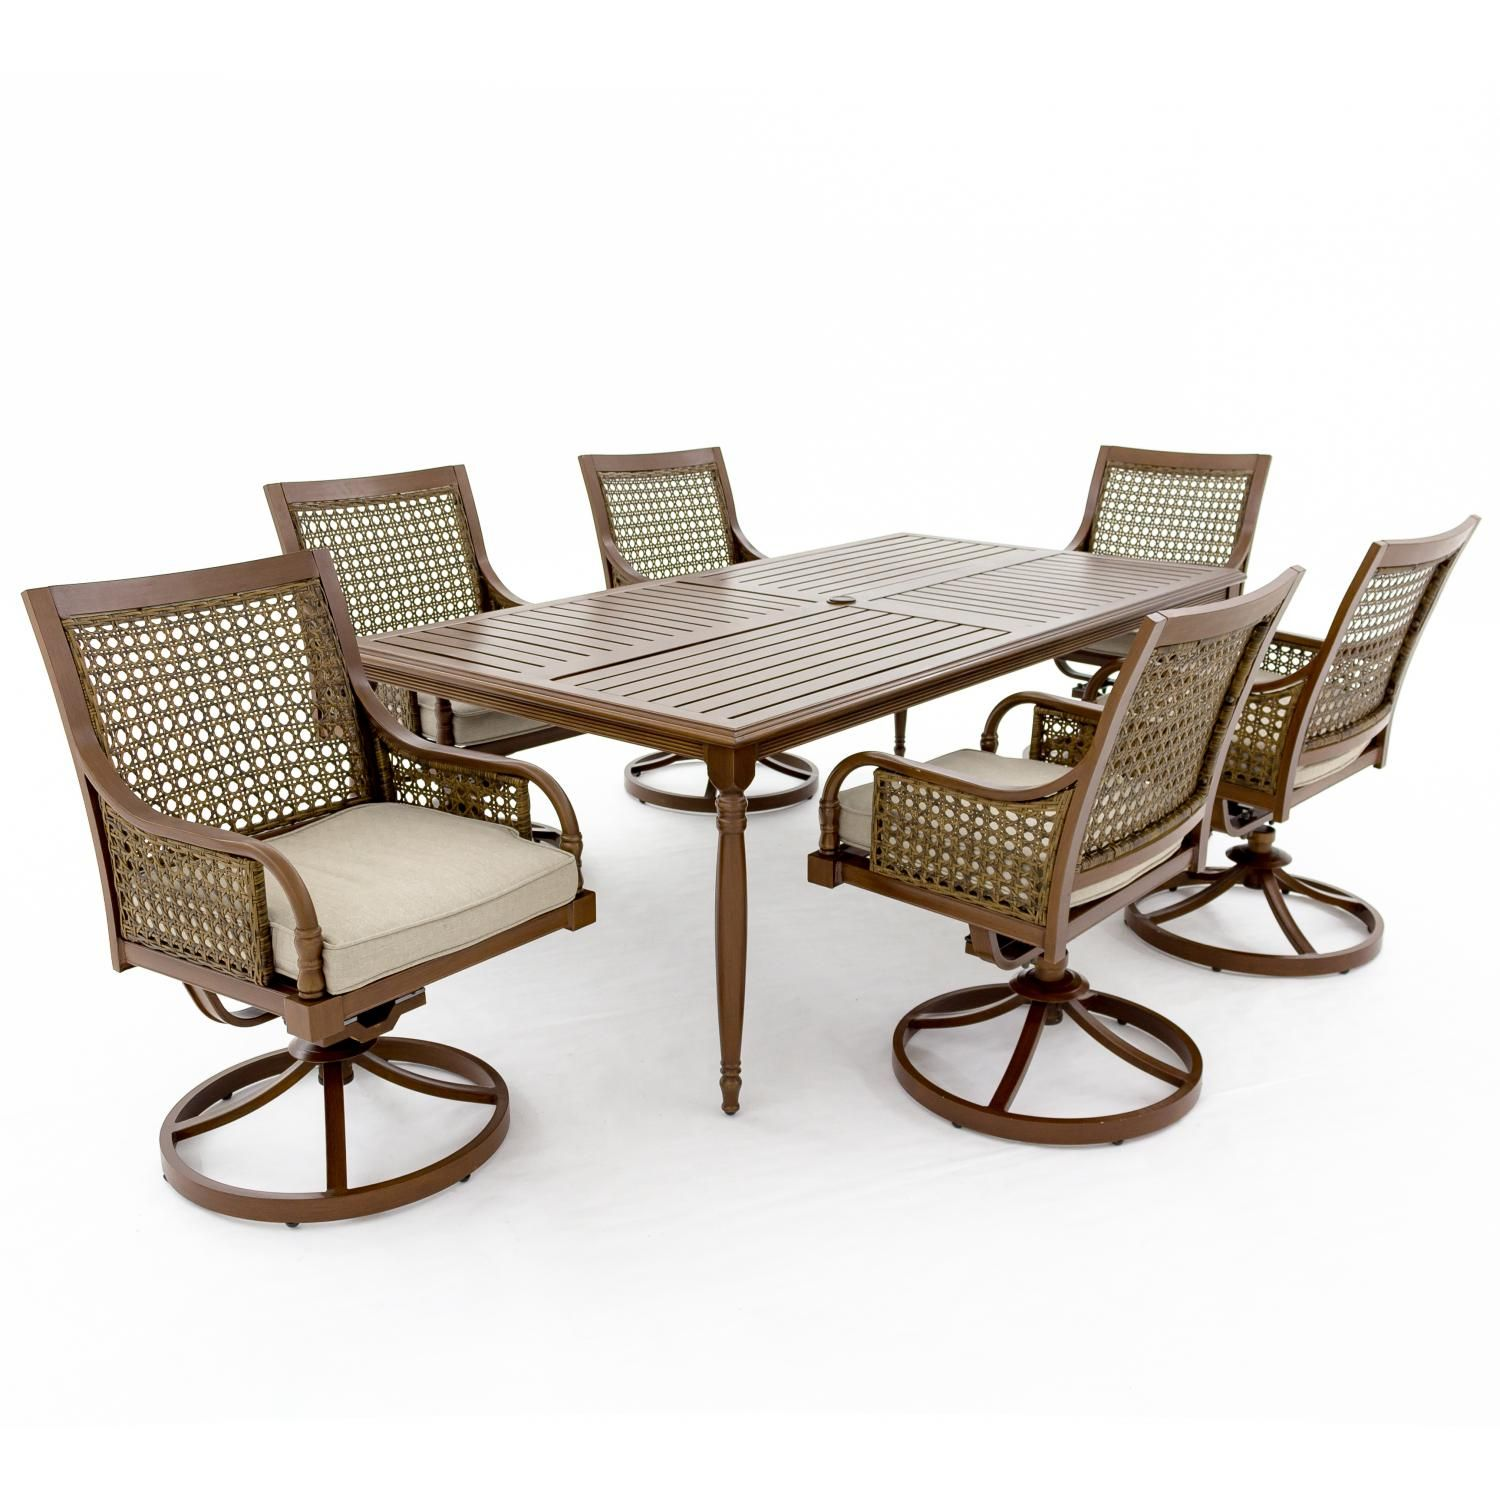 7 piece patio dining set featuring swivel chairs with Sunbrella